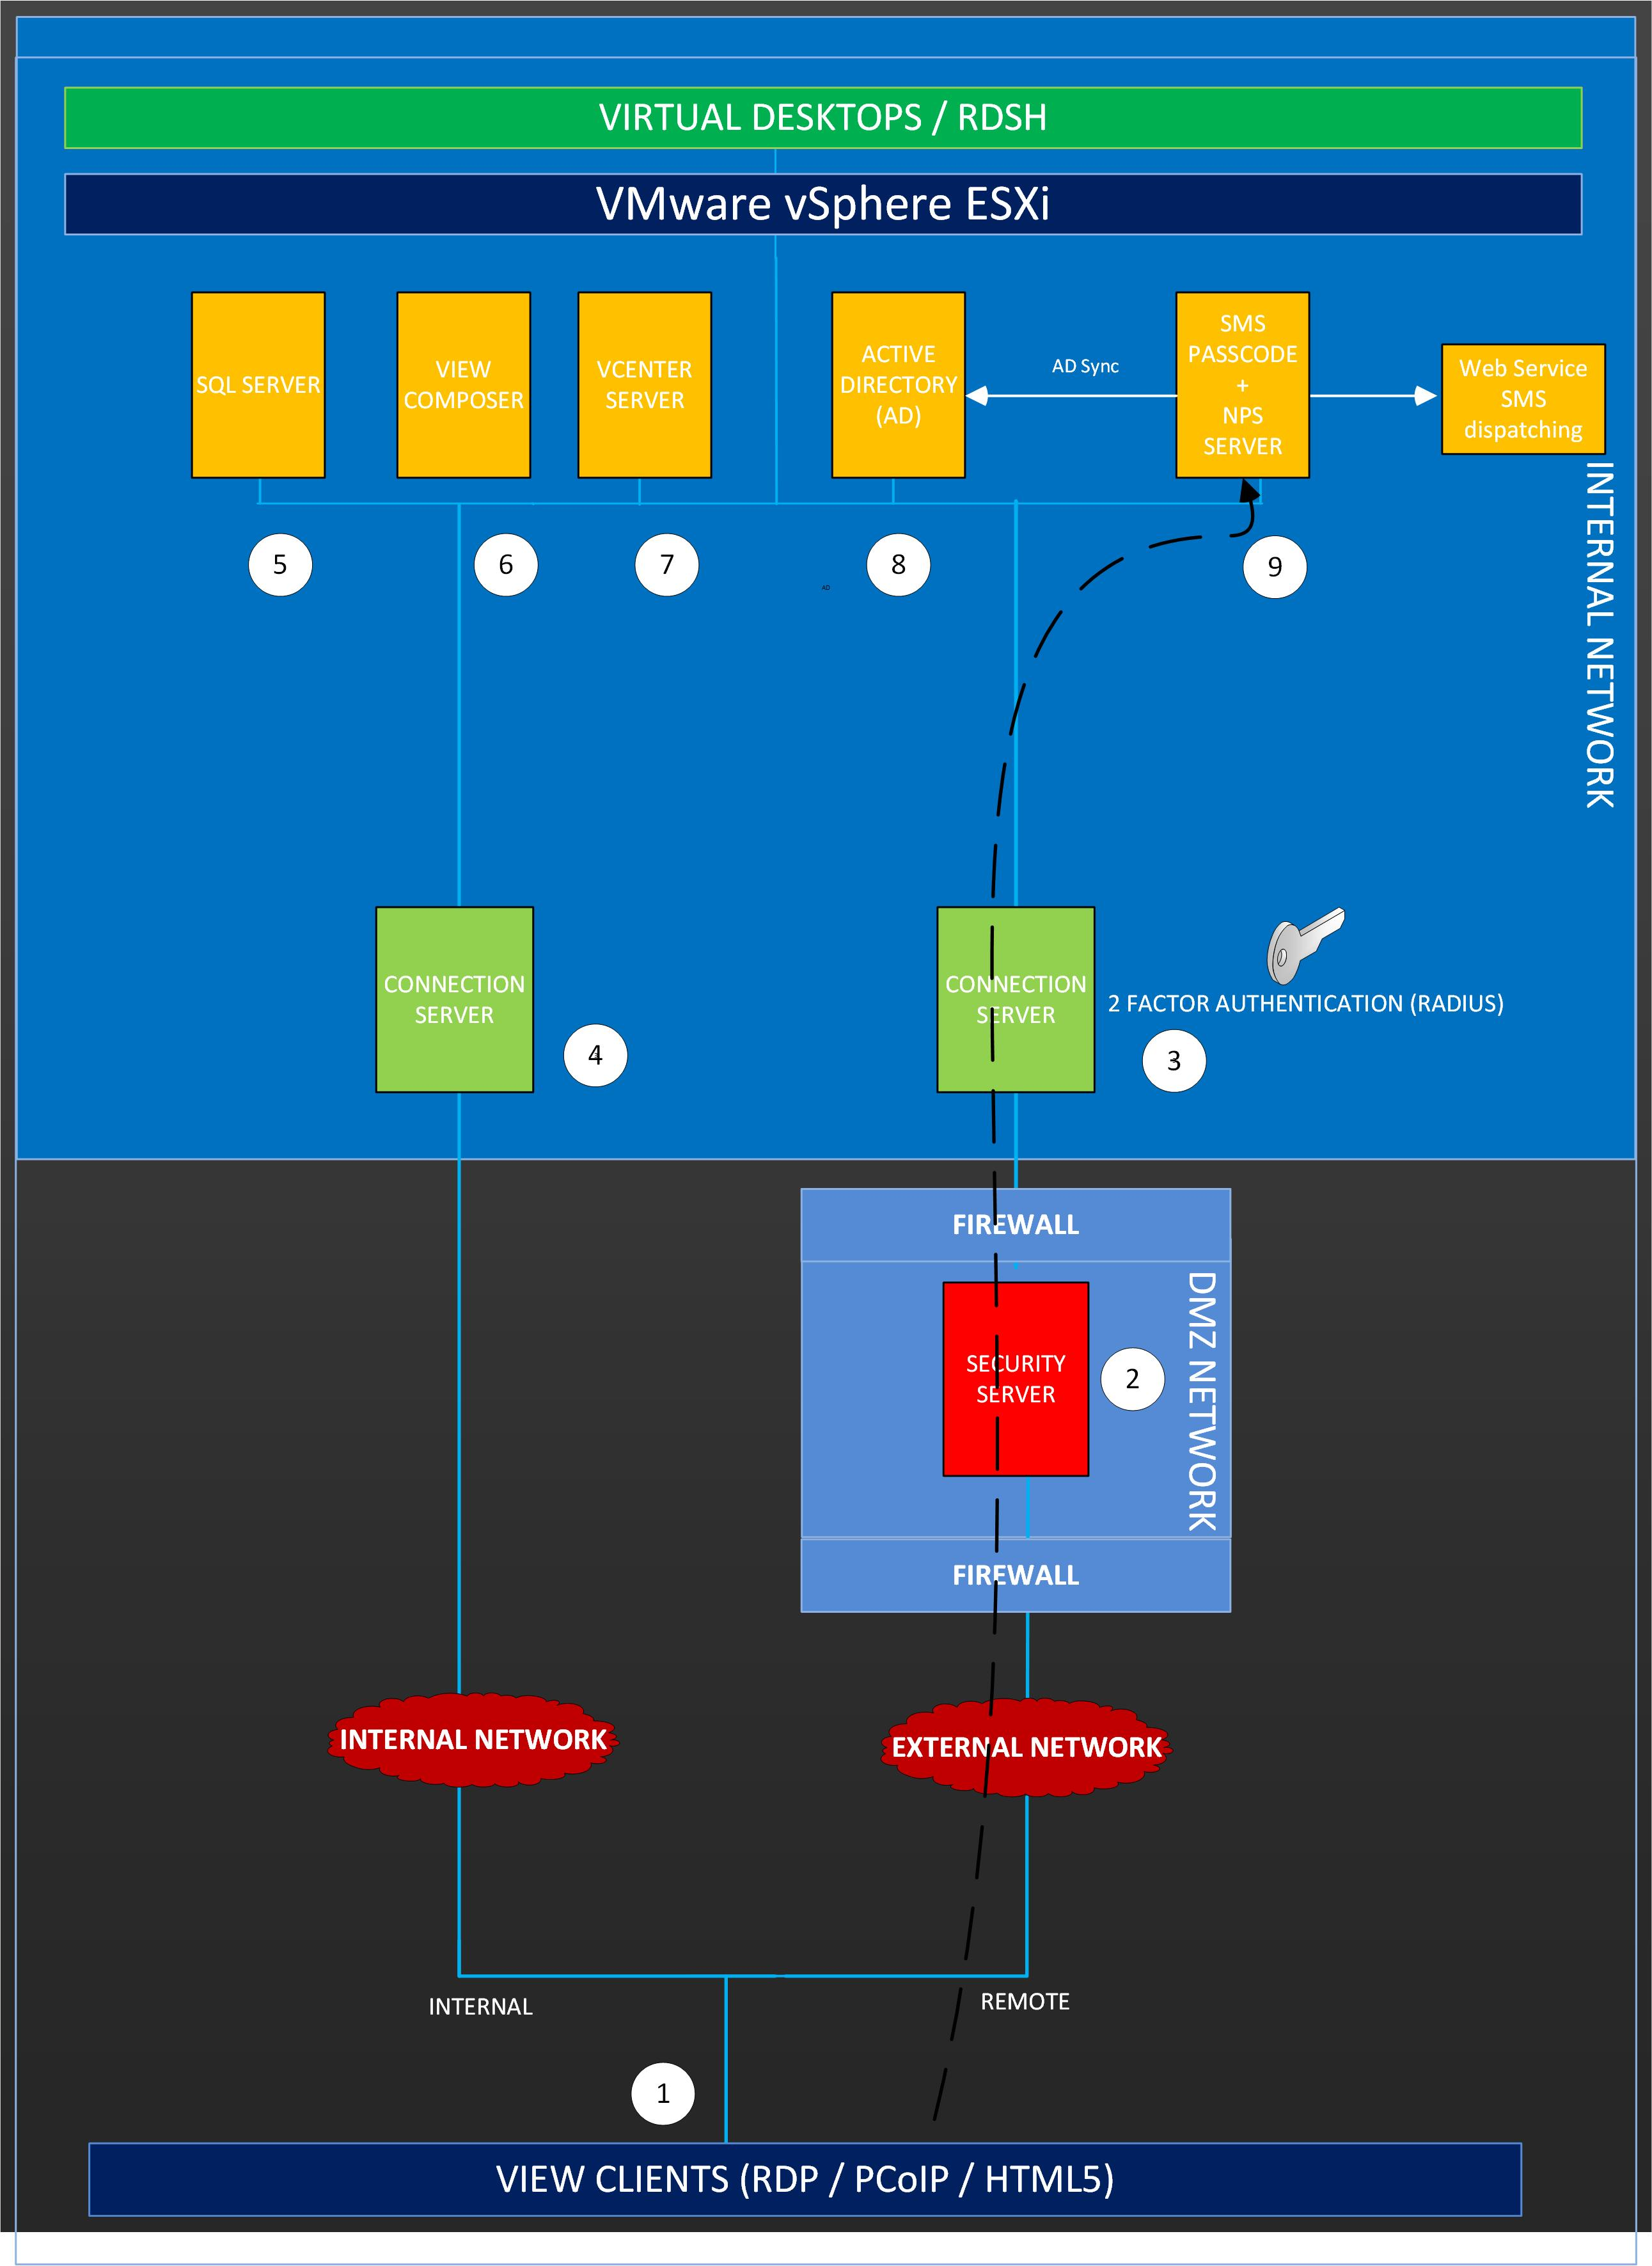 Tested SMS PASSCODE multi-factor authentication with VMware